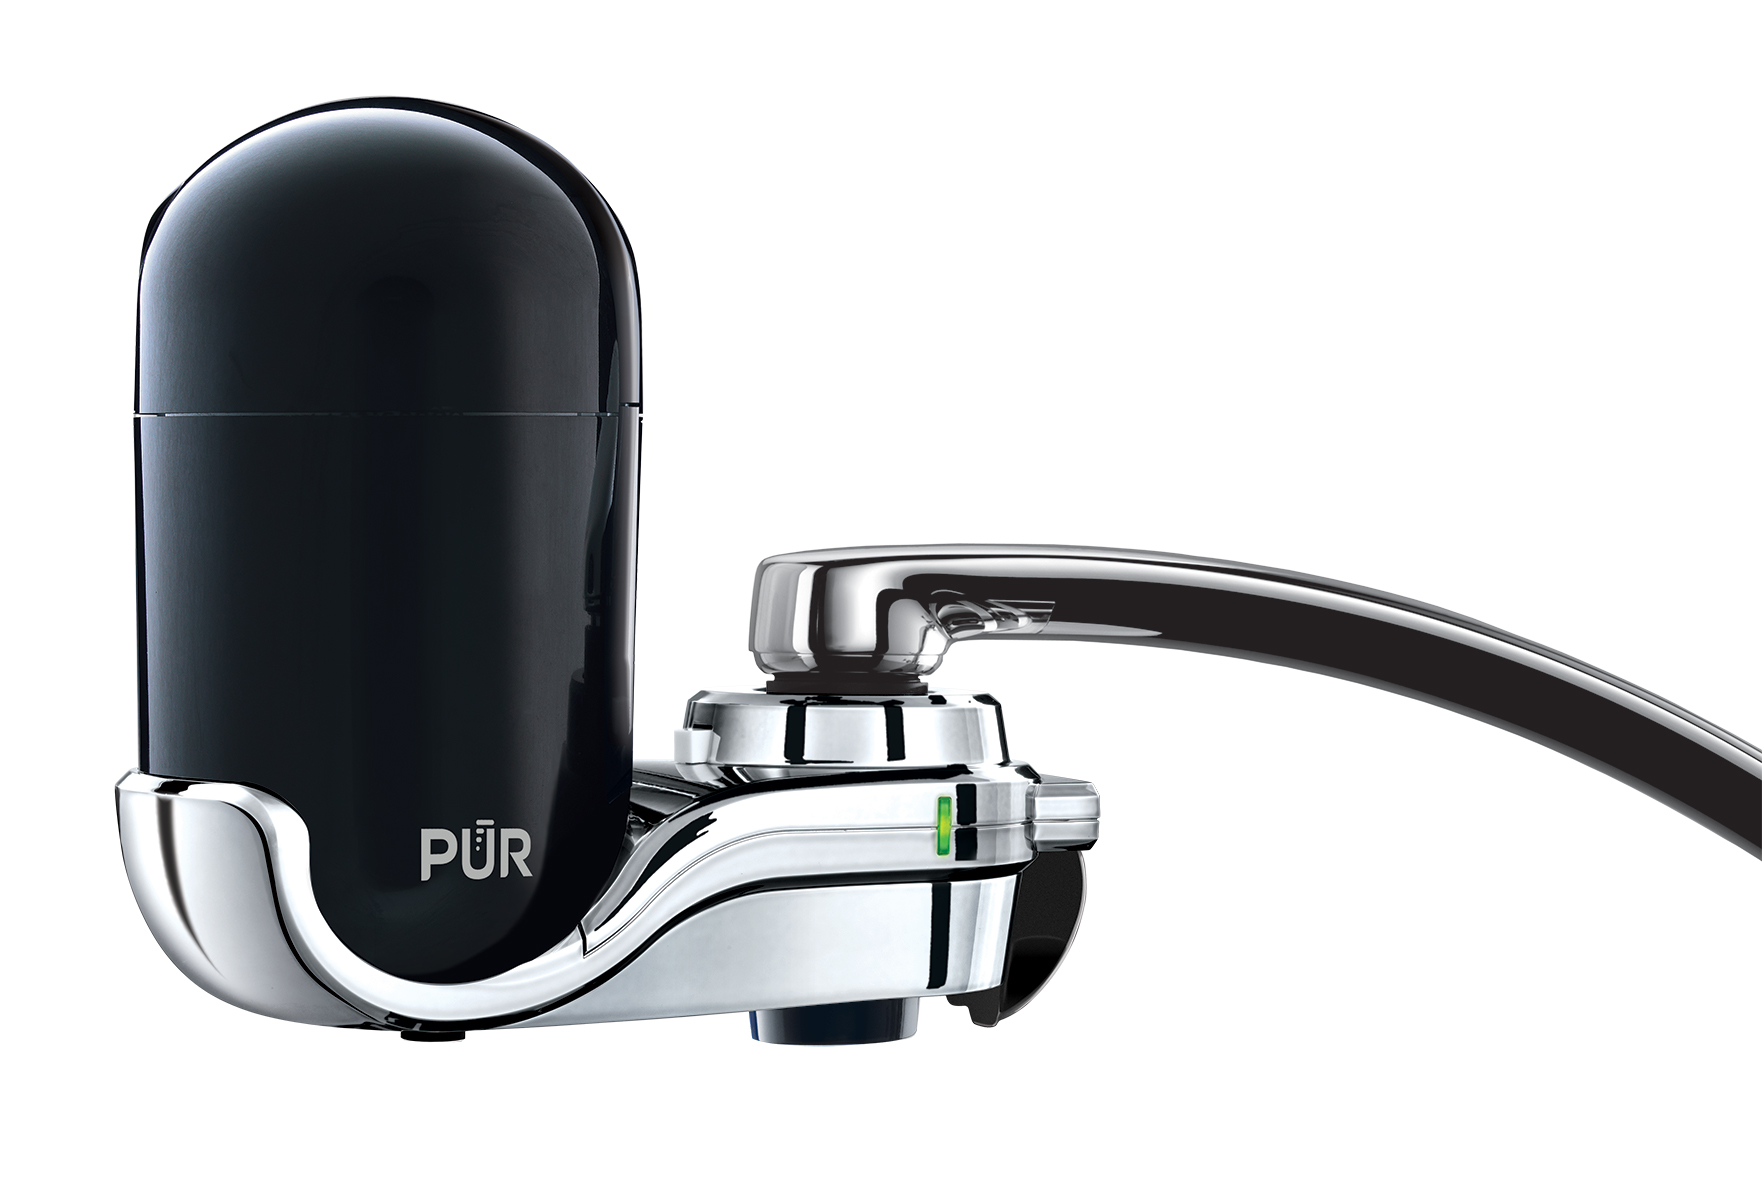 PUR Faucet Water Filter, FM-3500B, Black and Chrome - Walmart.com